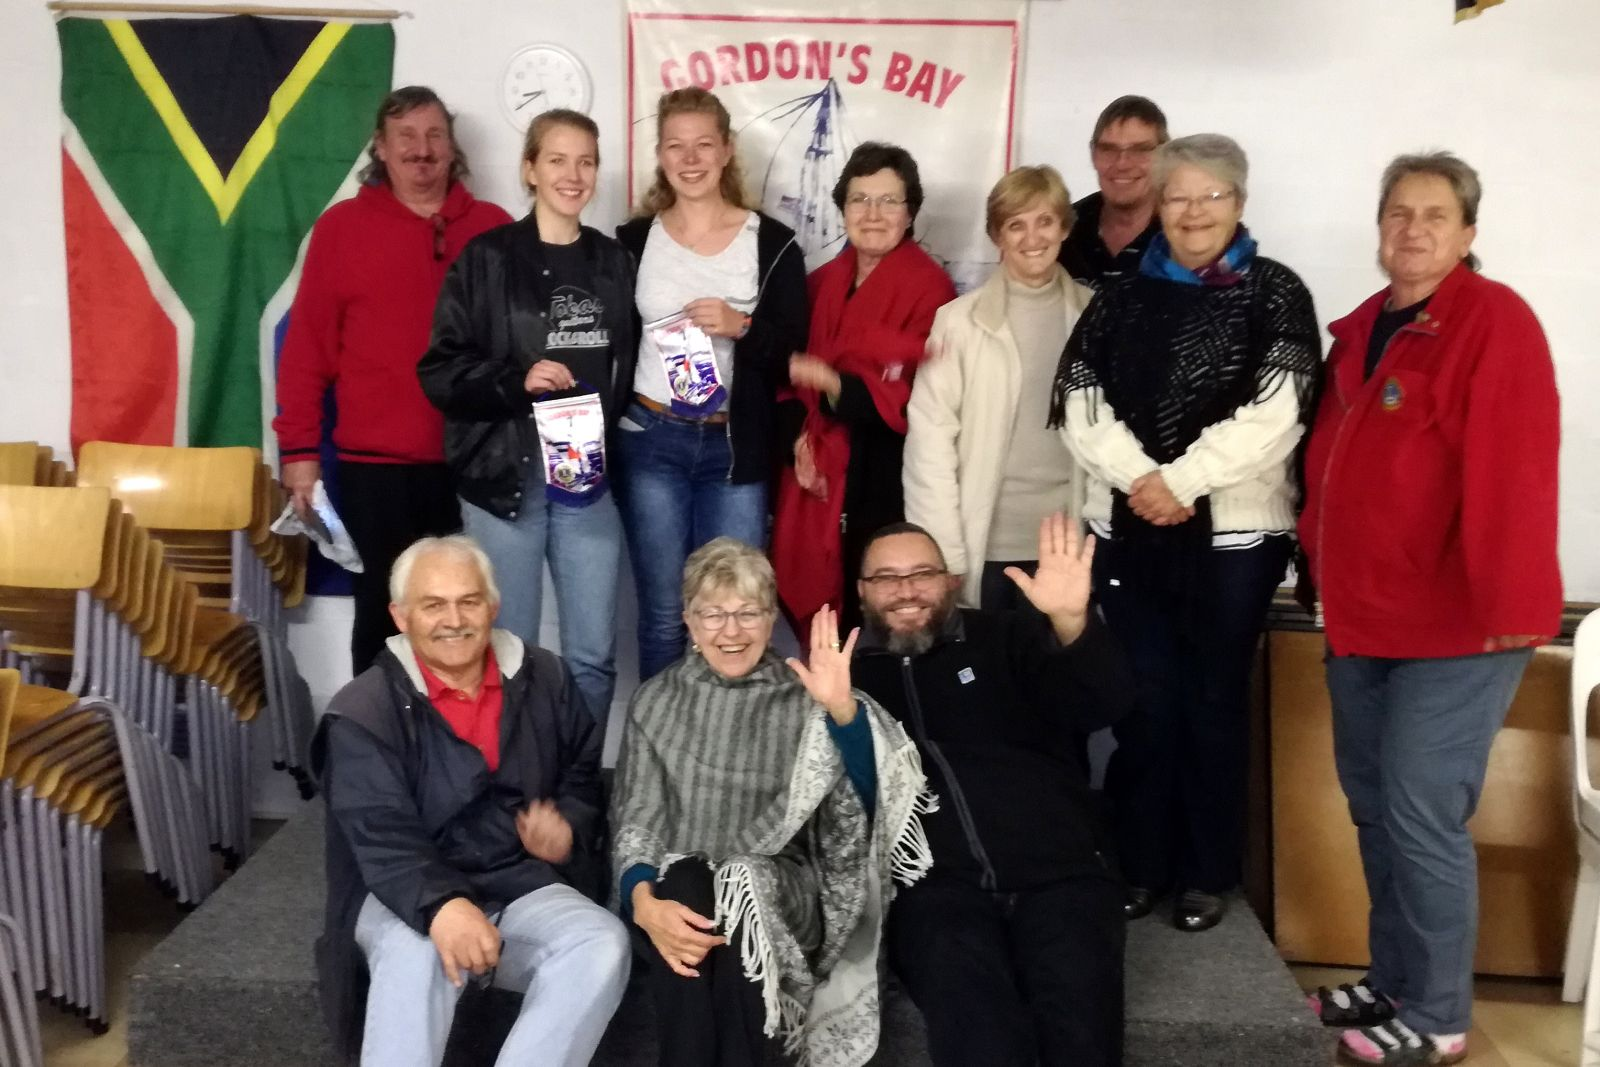 Members of the Gordon's Bay Lions Club with Exchange Students from Europe